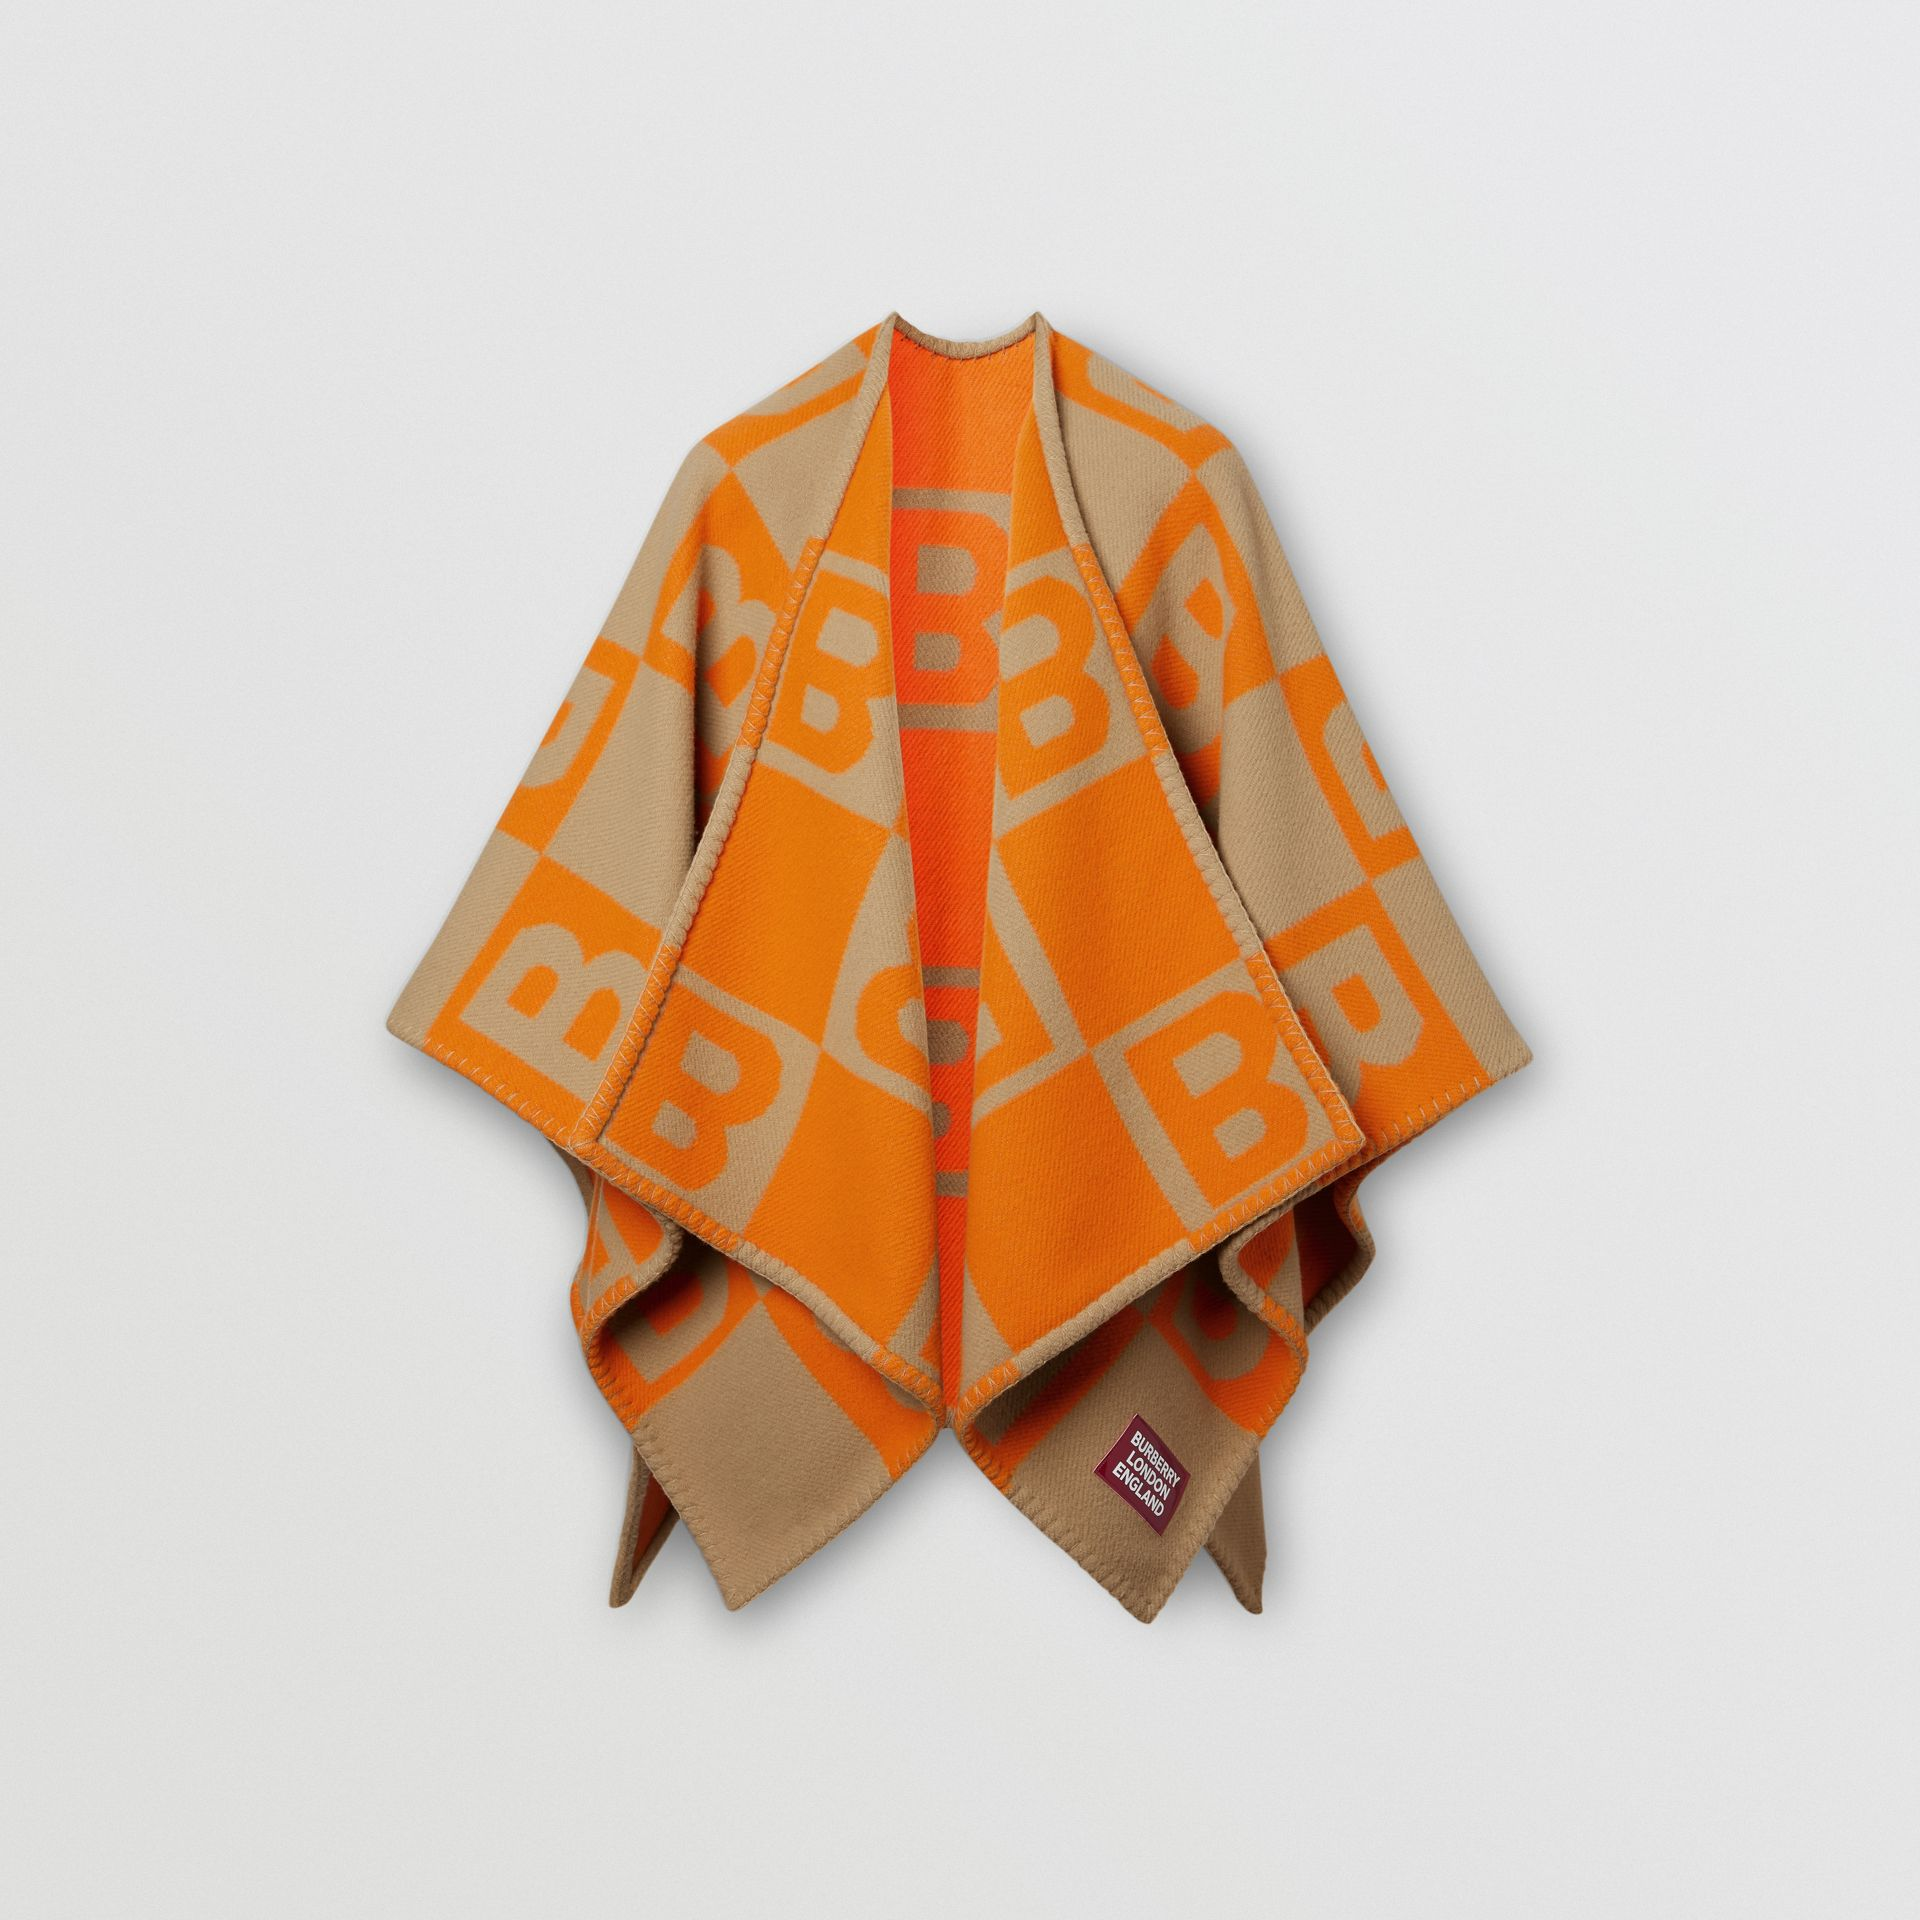 B Motif Merino Wool Cashmere Cape in Orange - Women | Burberry - gallery image 3